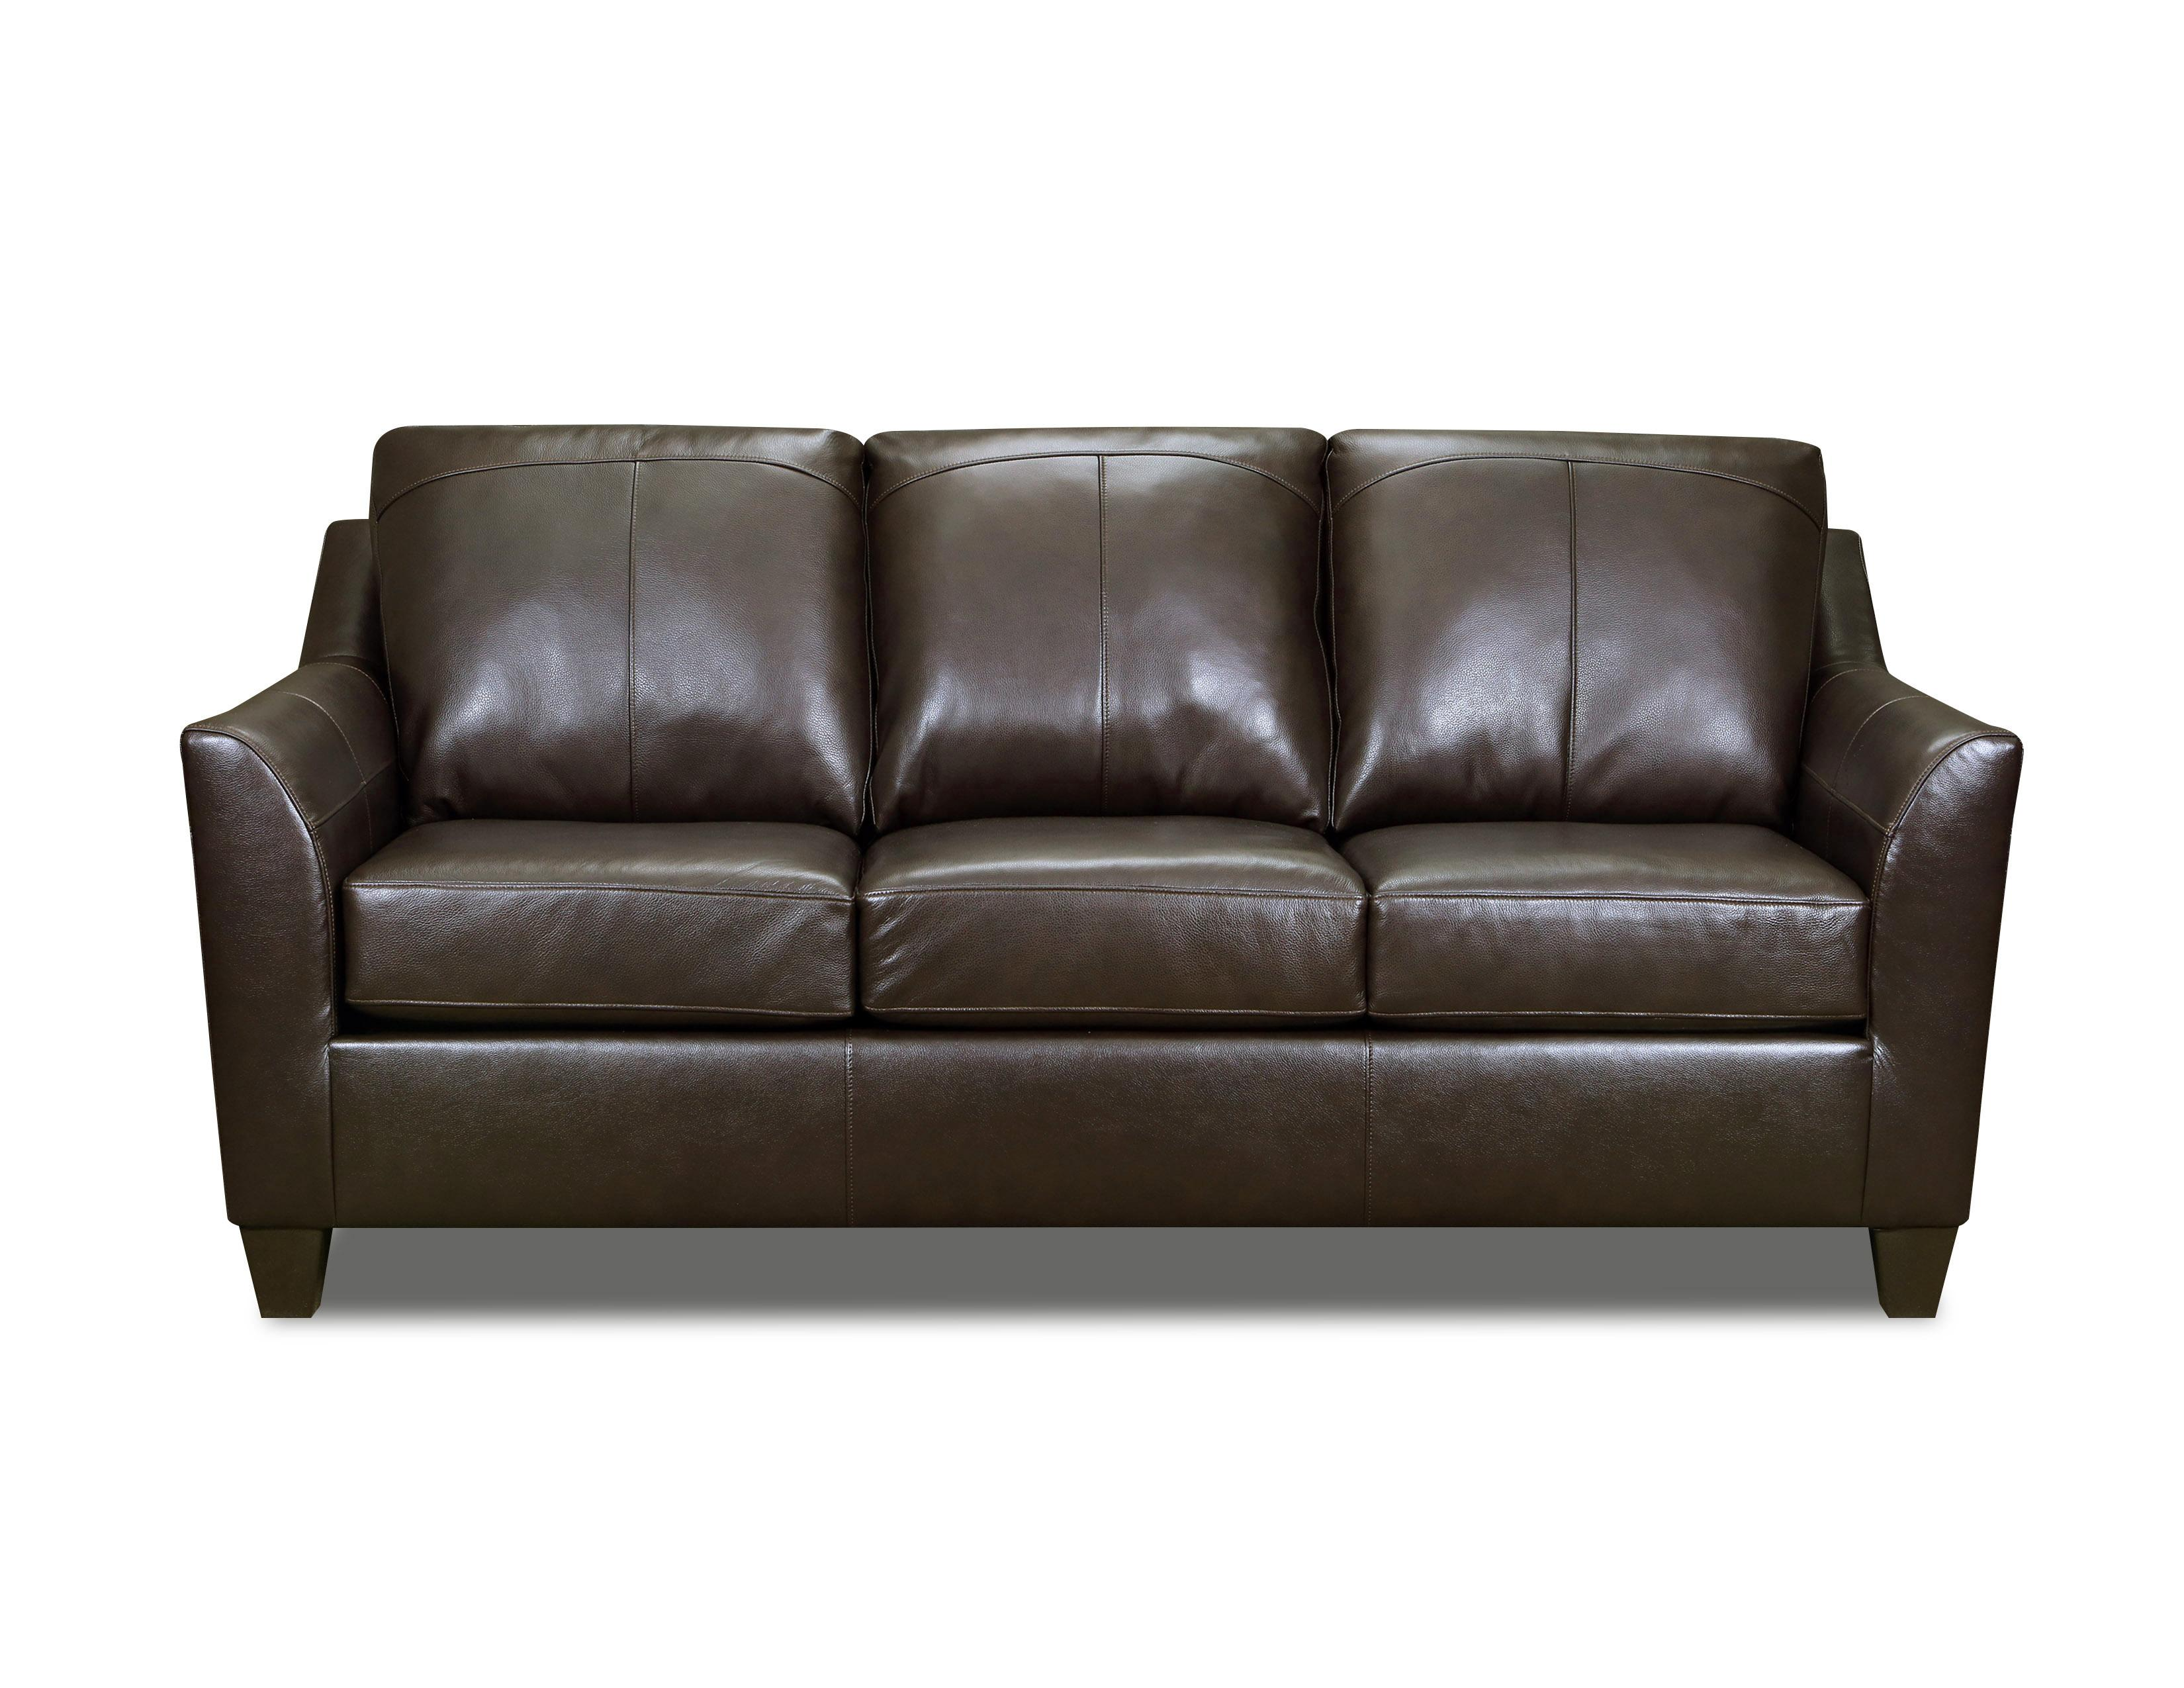 Lane Furniture Soft Touch Bark Leather Sofa